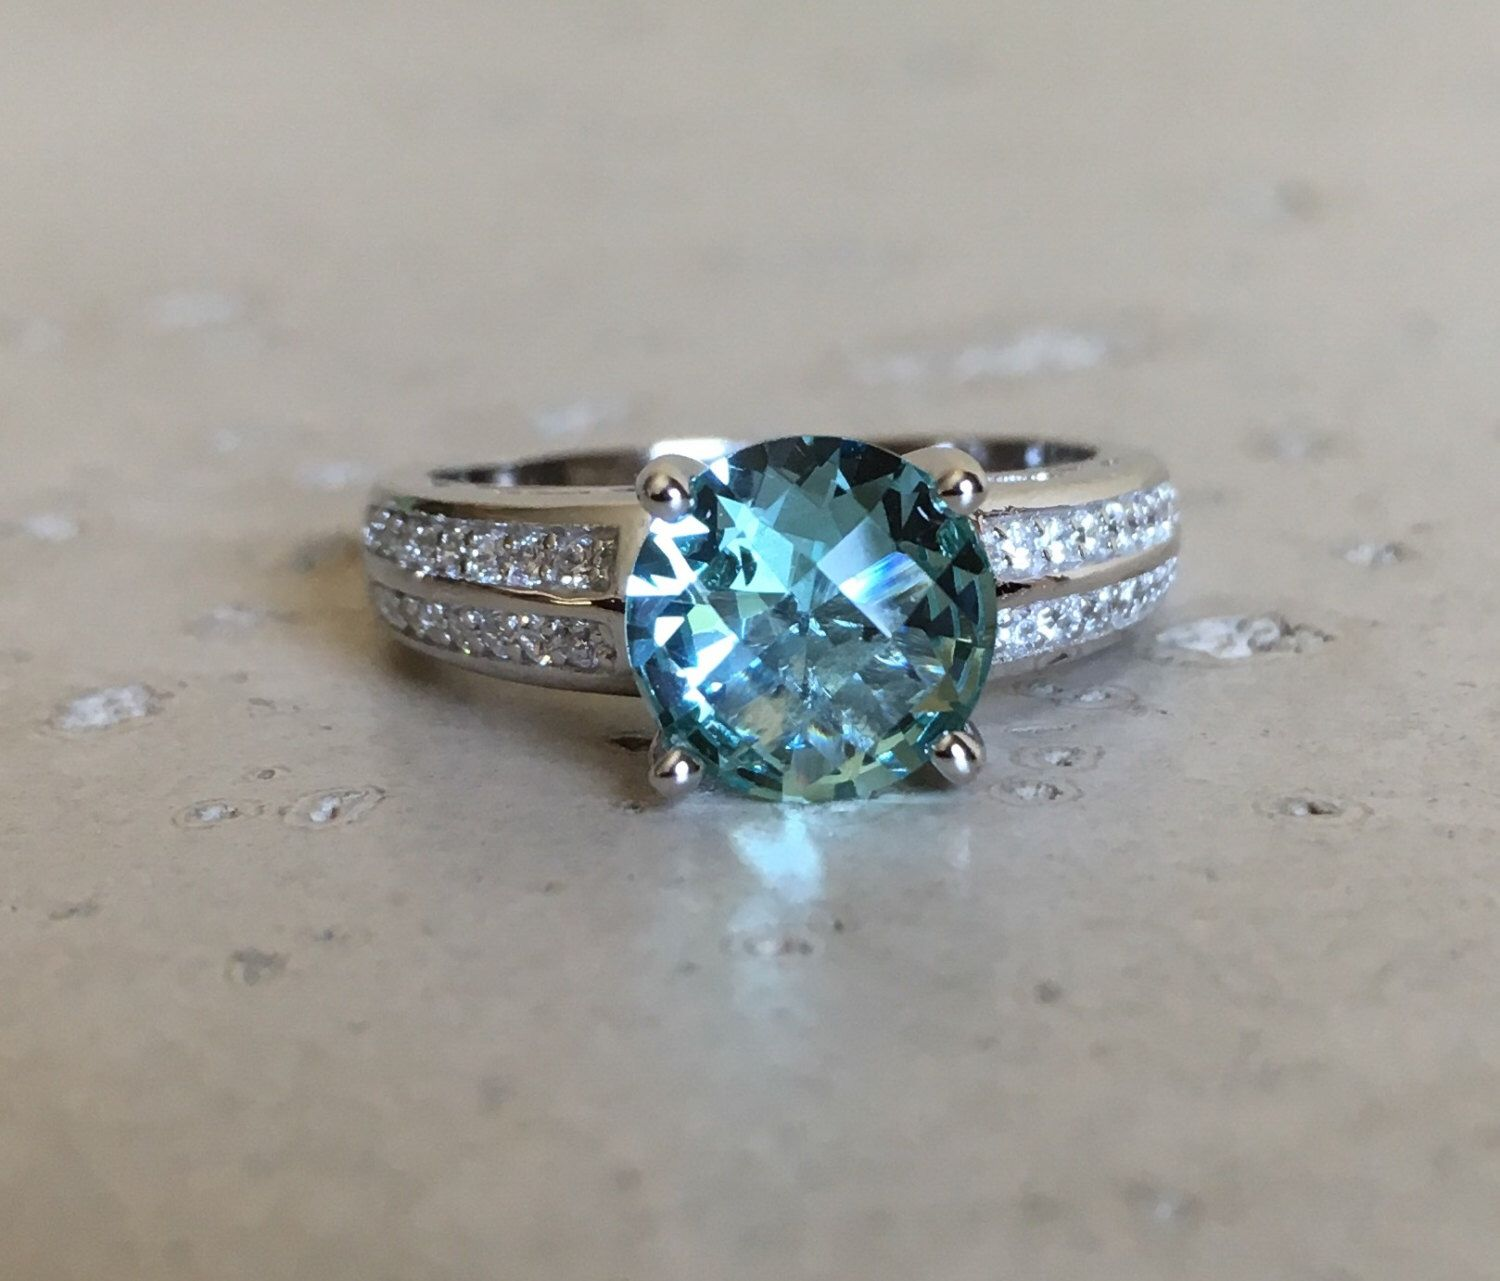 kelsall and green harriet citrine aquamarine quartz topaz ring rings engagement